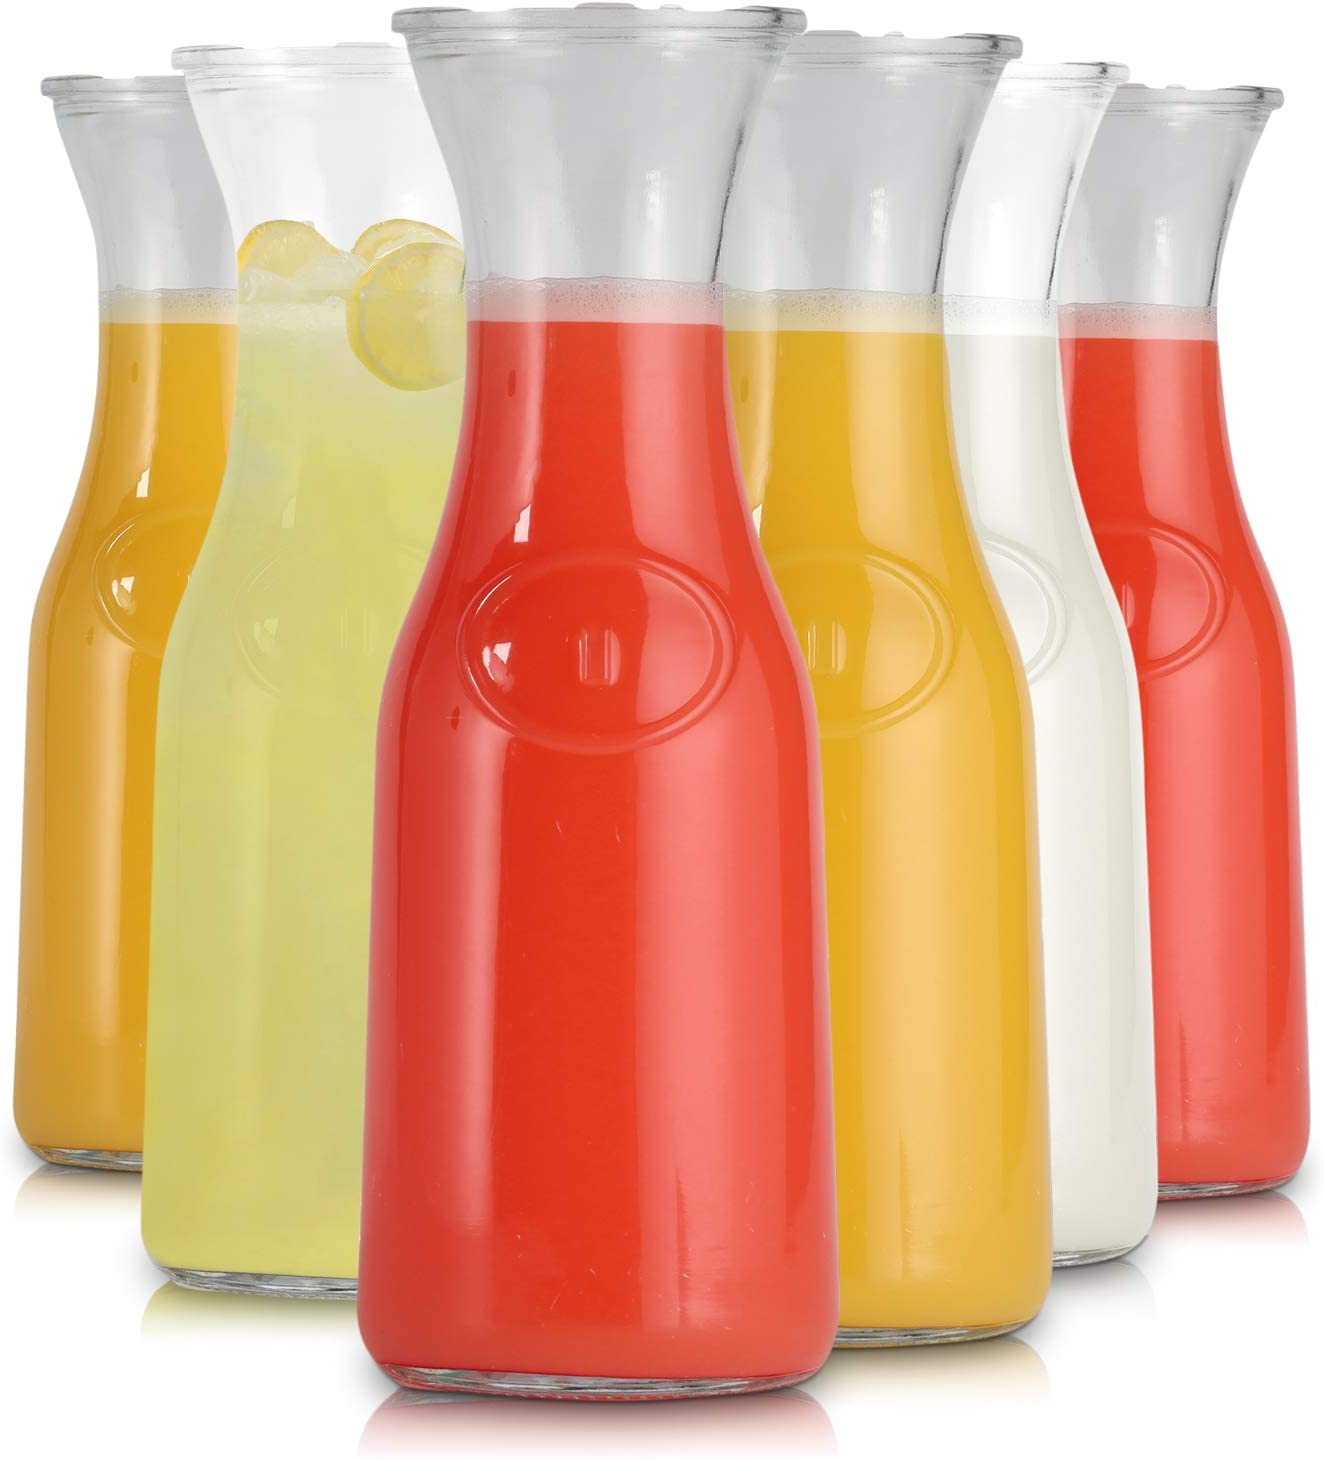 Glass Carafe 1 Liter Pitcher Stylish Narrow Neck Beverage Dispenser Bottle for Brunch, Parties, Birthday, Margarita, Champagne, Mimosa, Iced Tea, Punch, Lemonade Includes Airtight Lids (6) By LATTI